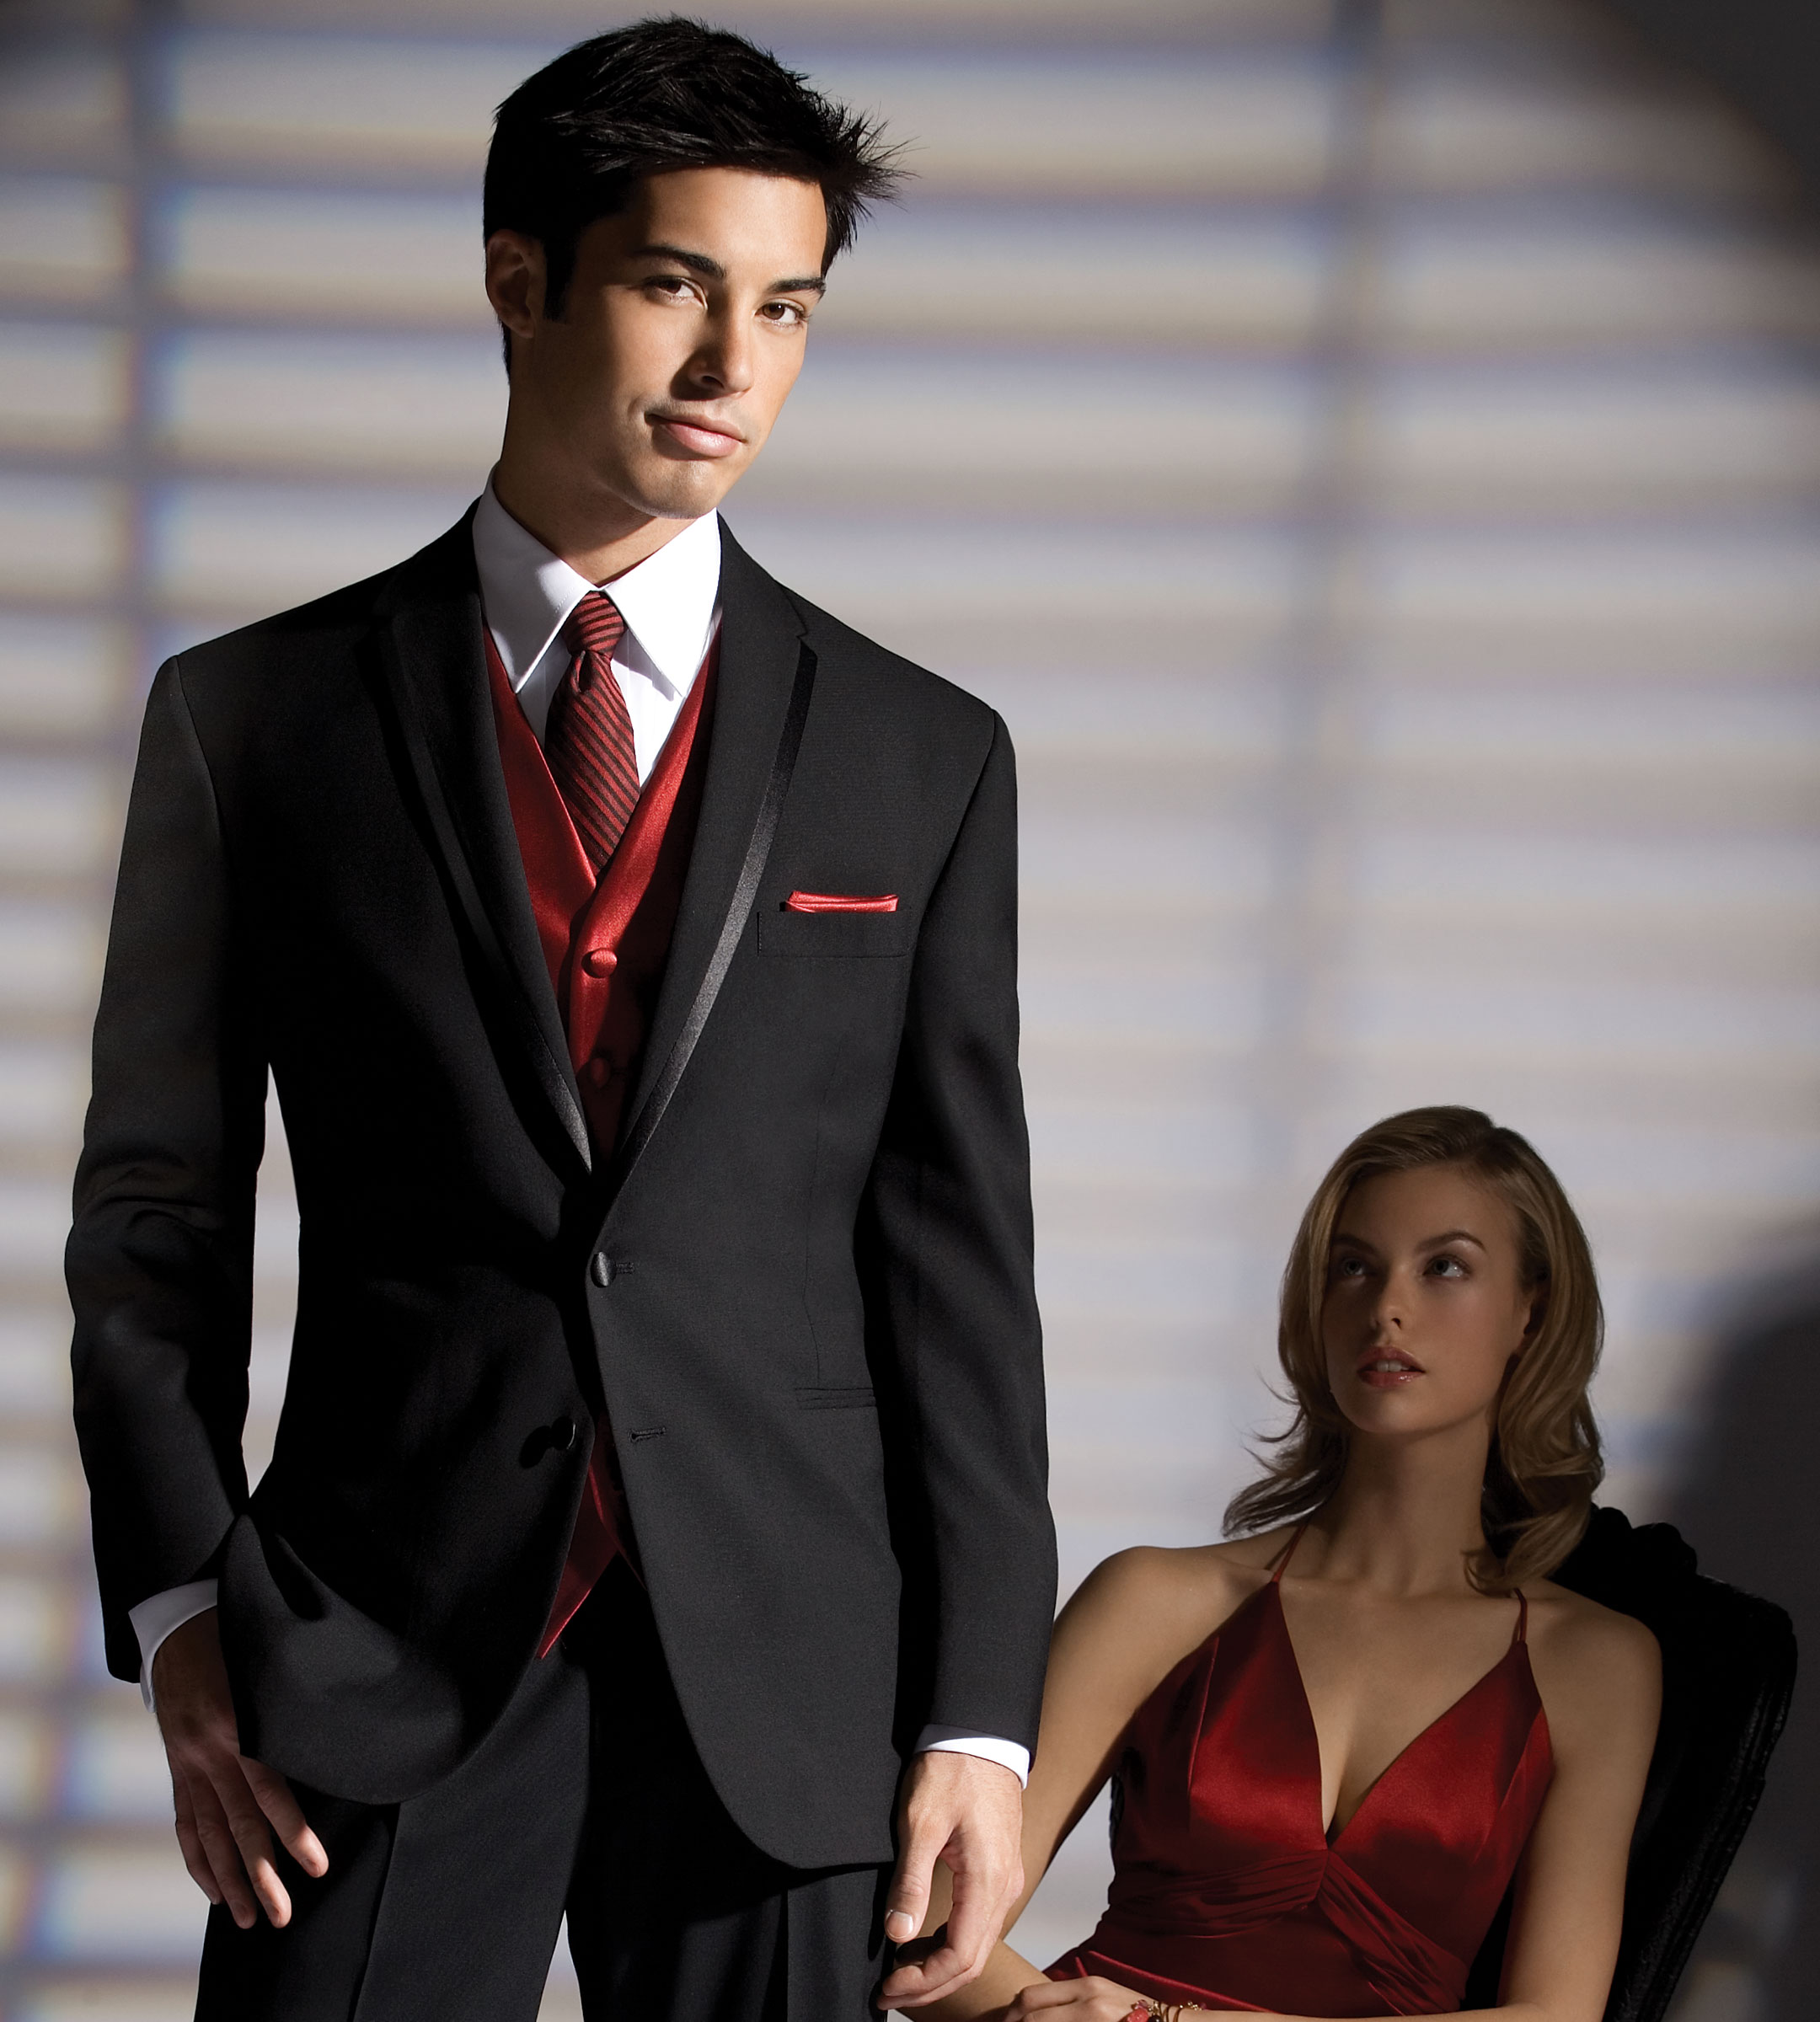 Prom Tuxedos; three ways to impress with your tux! - Phoenix Tux Rental